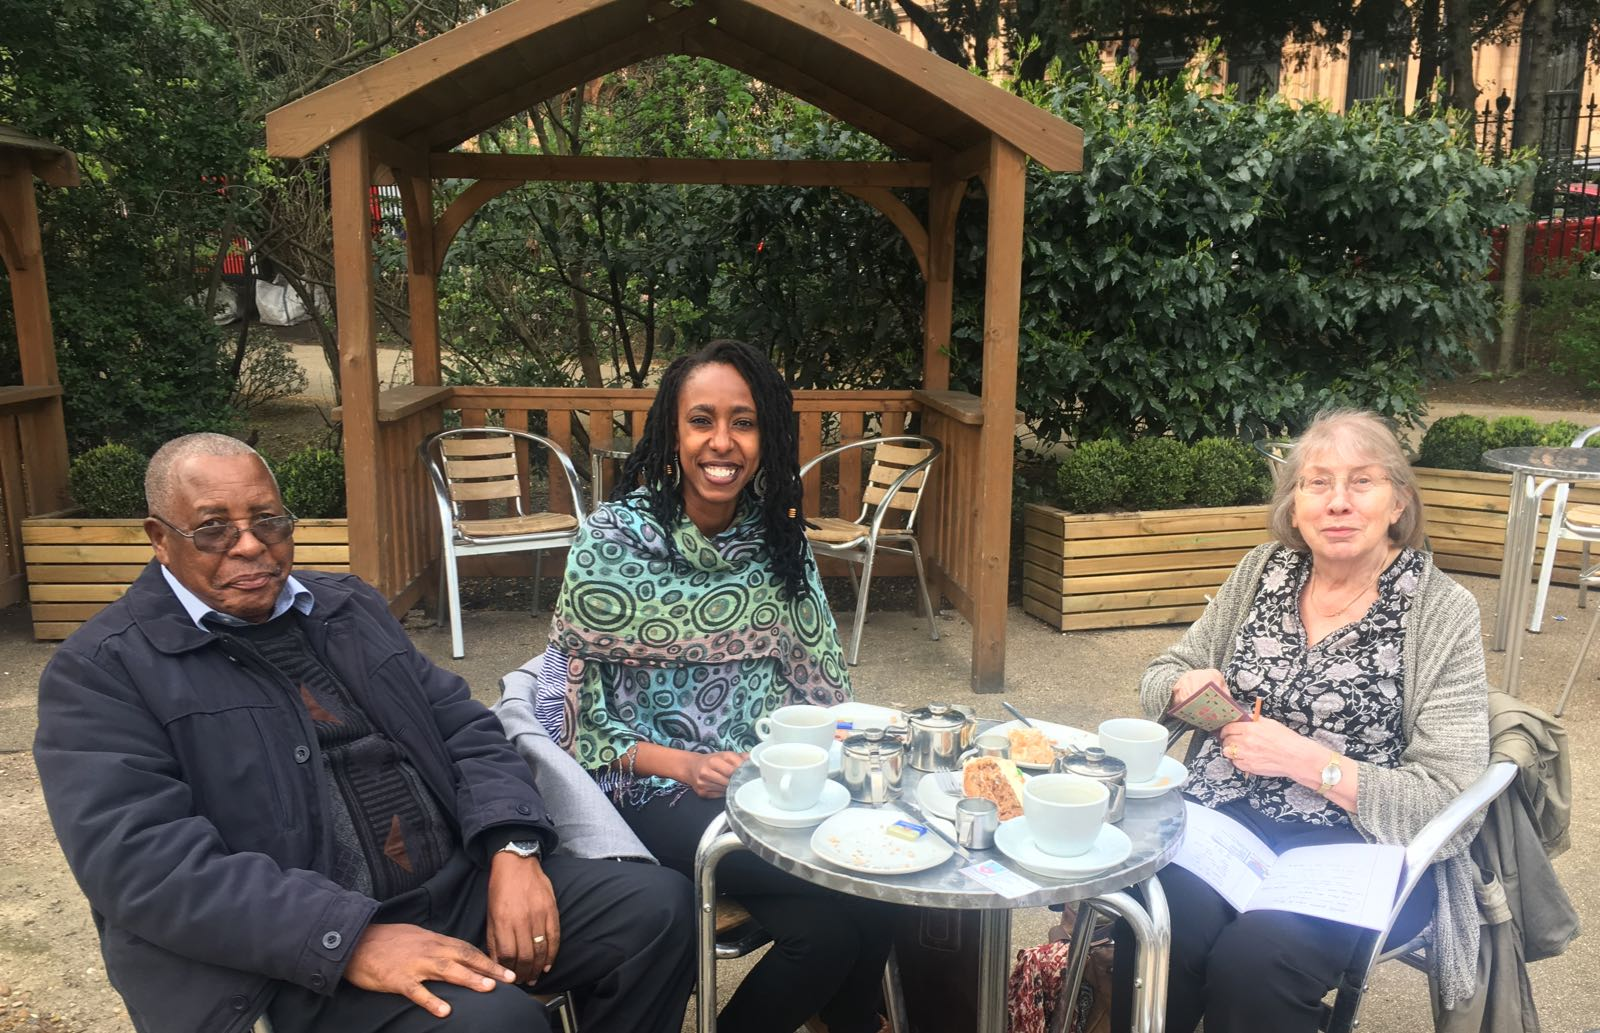 Chao (centre) and Olivia (off camera) talking archives with Nathan Mnjama and Mandy Banton in Russell Square, London.